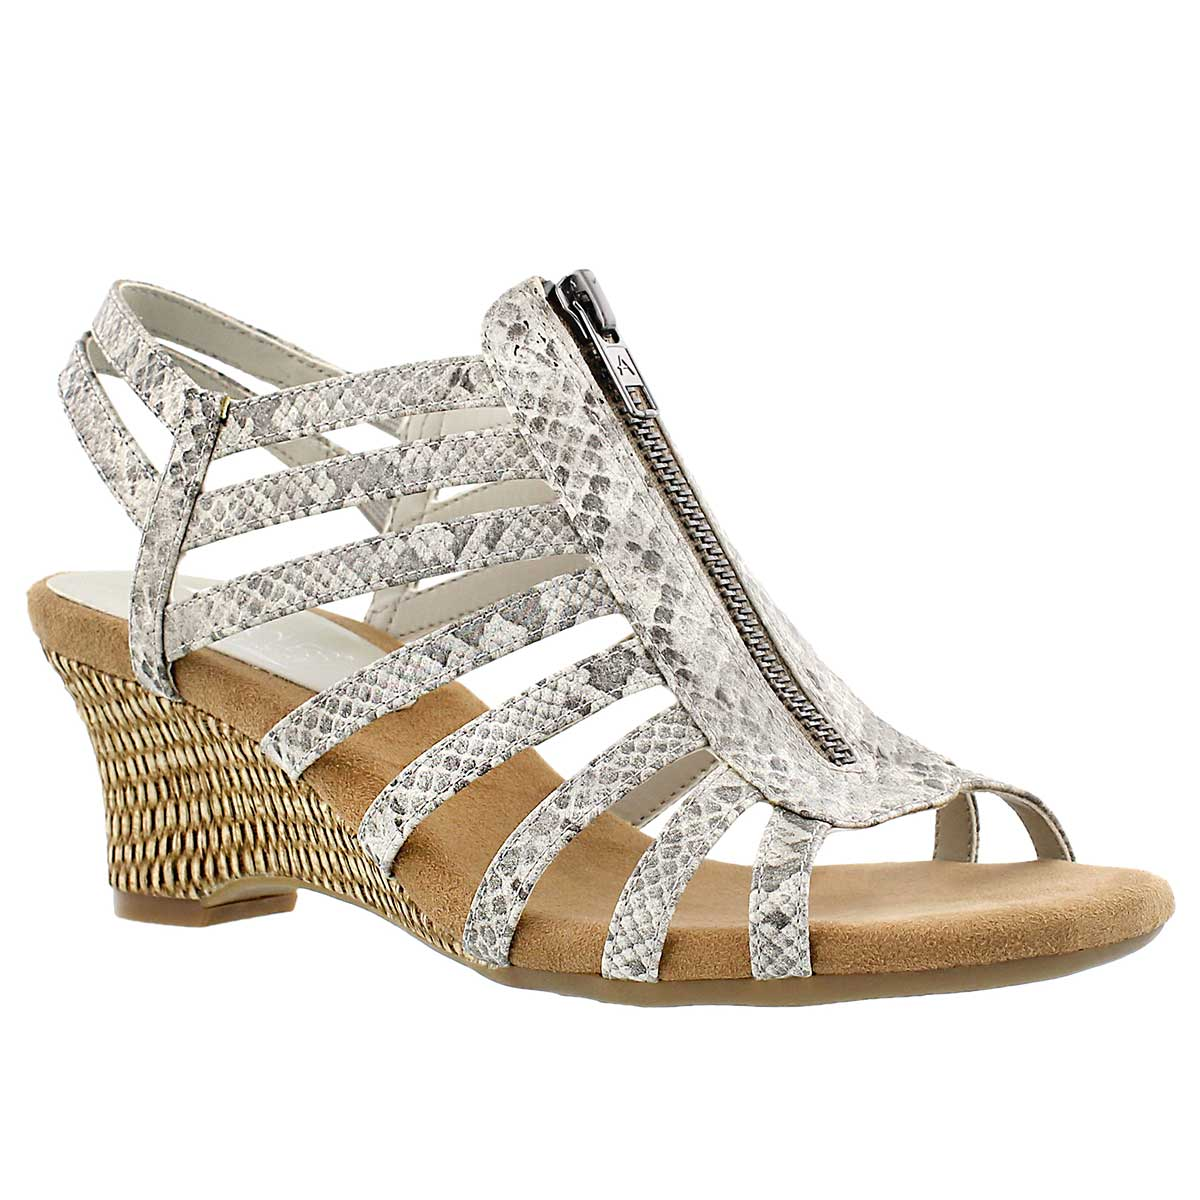 Lds Half Dozen grey lizard wedge sandal